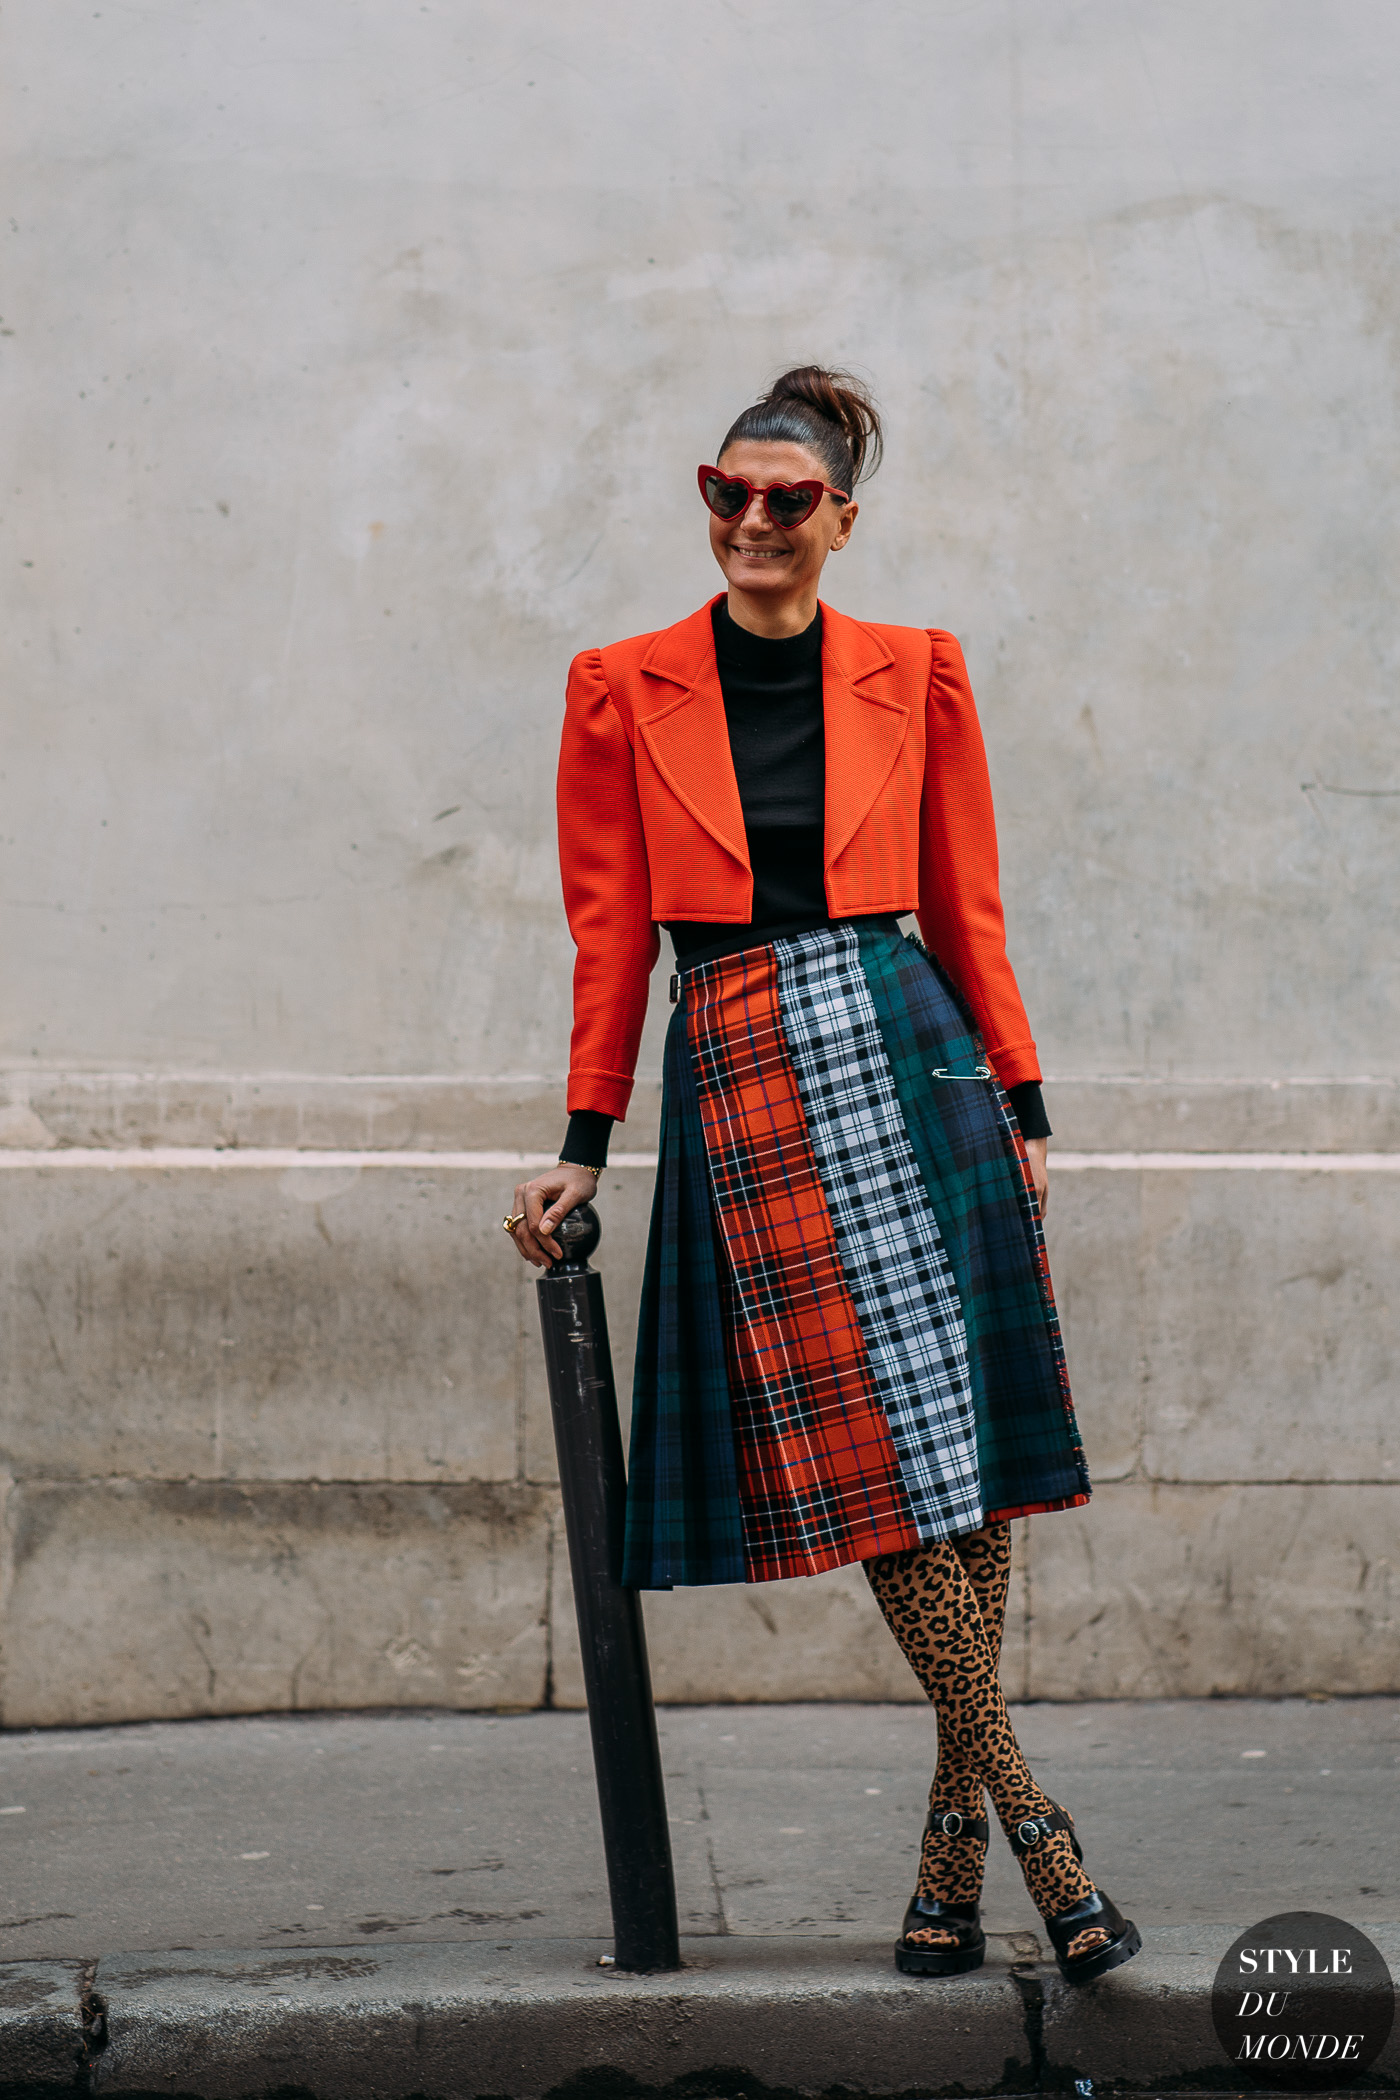 Giovanna-Battaglia-by-STYLEDUMONDE-Street-Style-Fashion-Photography-FW18-20180306_48A0523